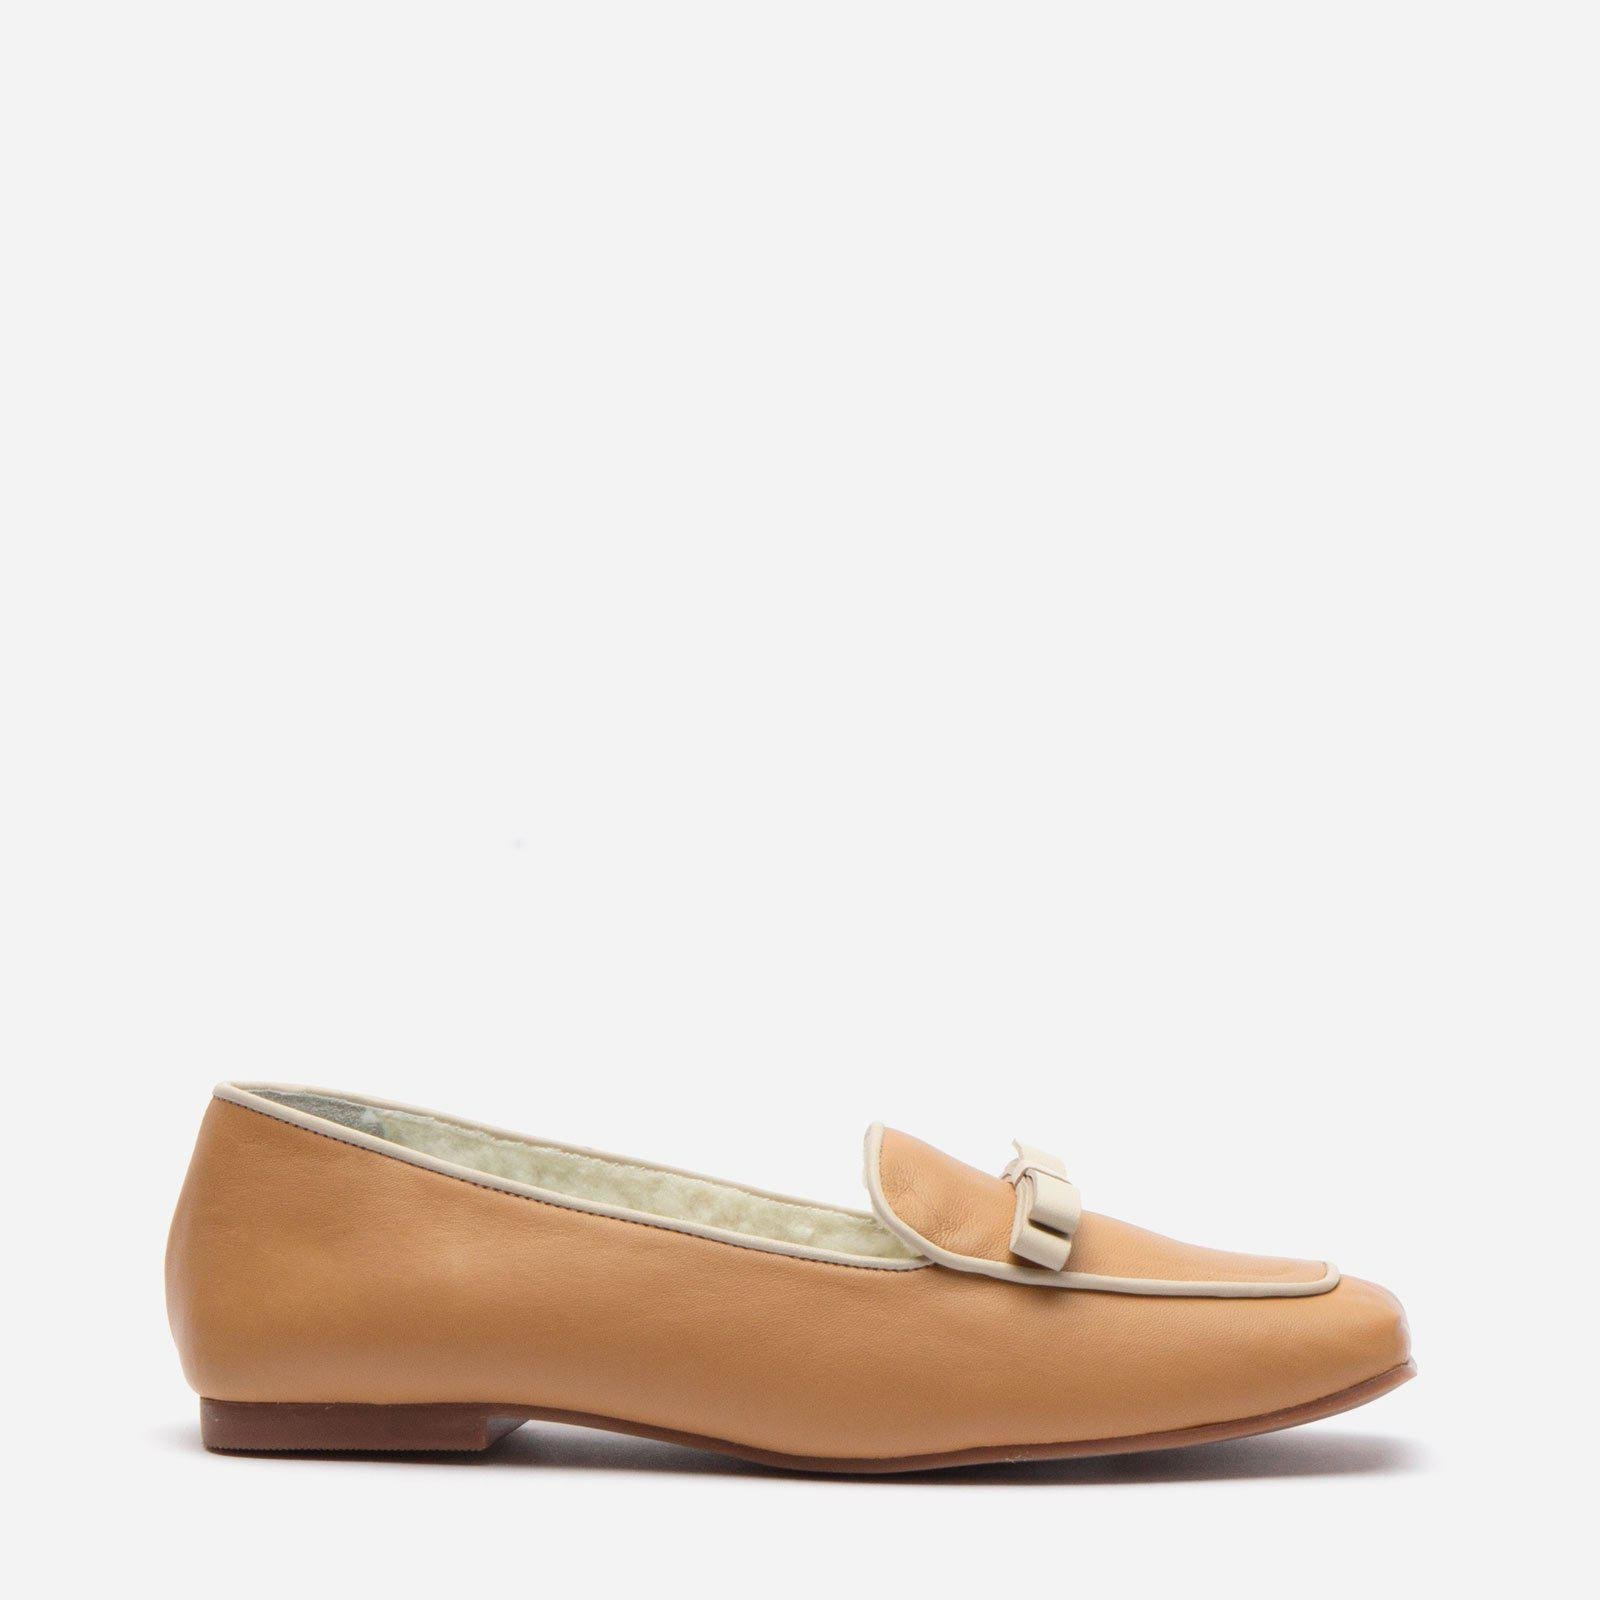 Suzanne Cozy Loafer Nappa Faux Shearling Camel